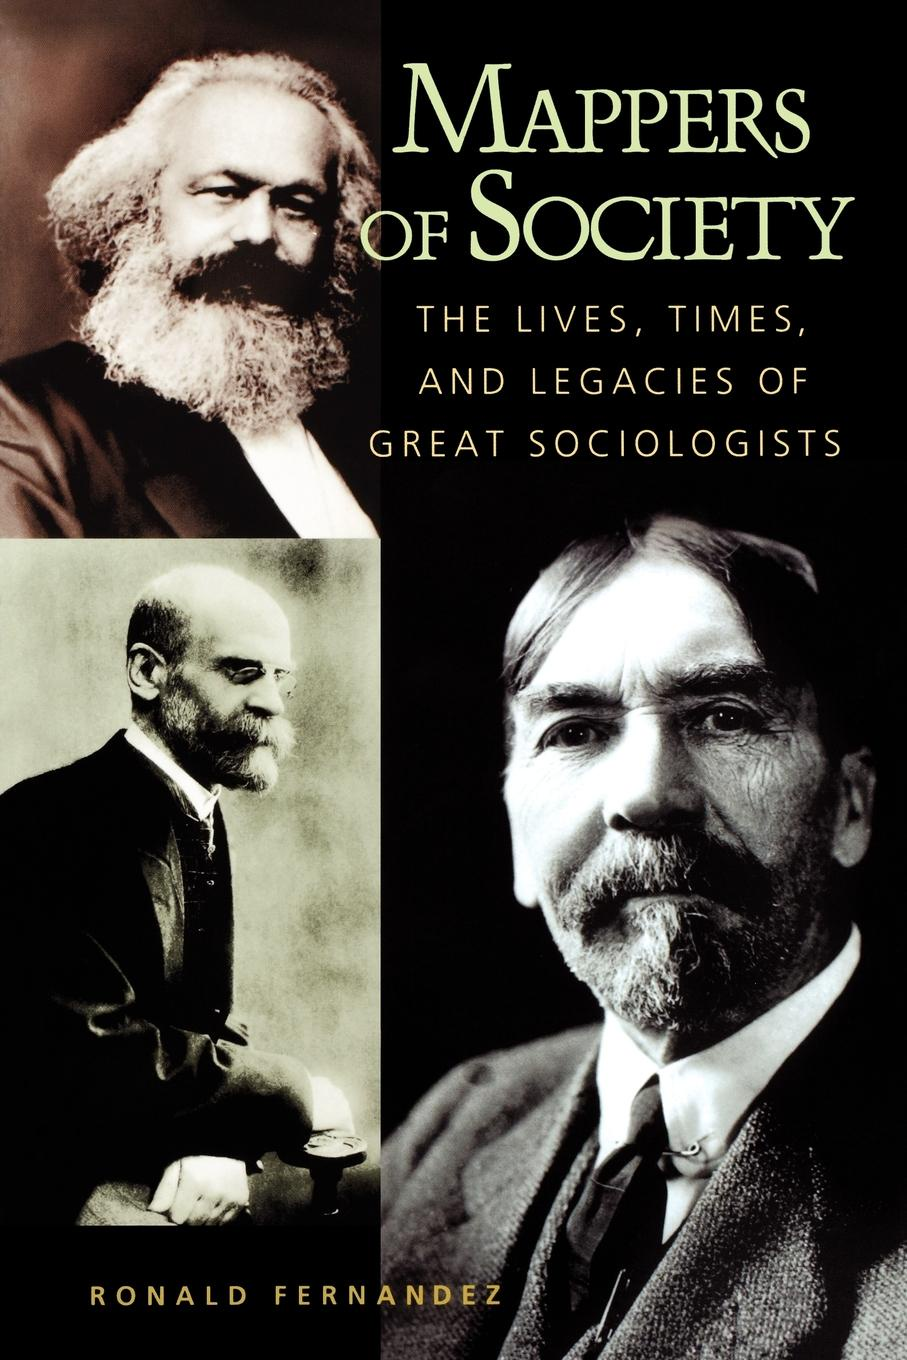 Ronald Fernandez Mappers of Society. The Lives, Times, and Legacies of Great Sociologists shakespeare and emotions inheritances enactments legacies